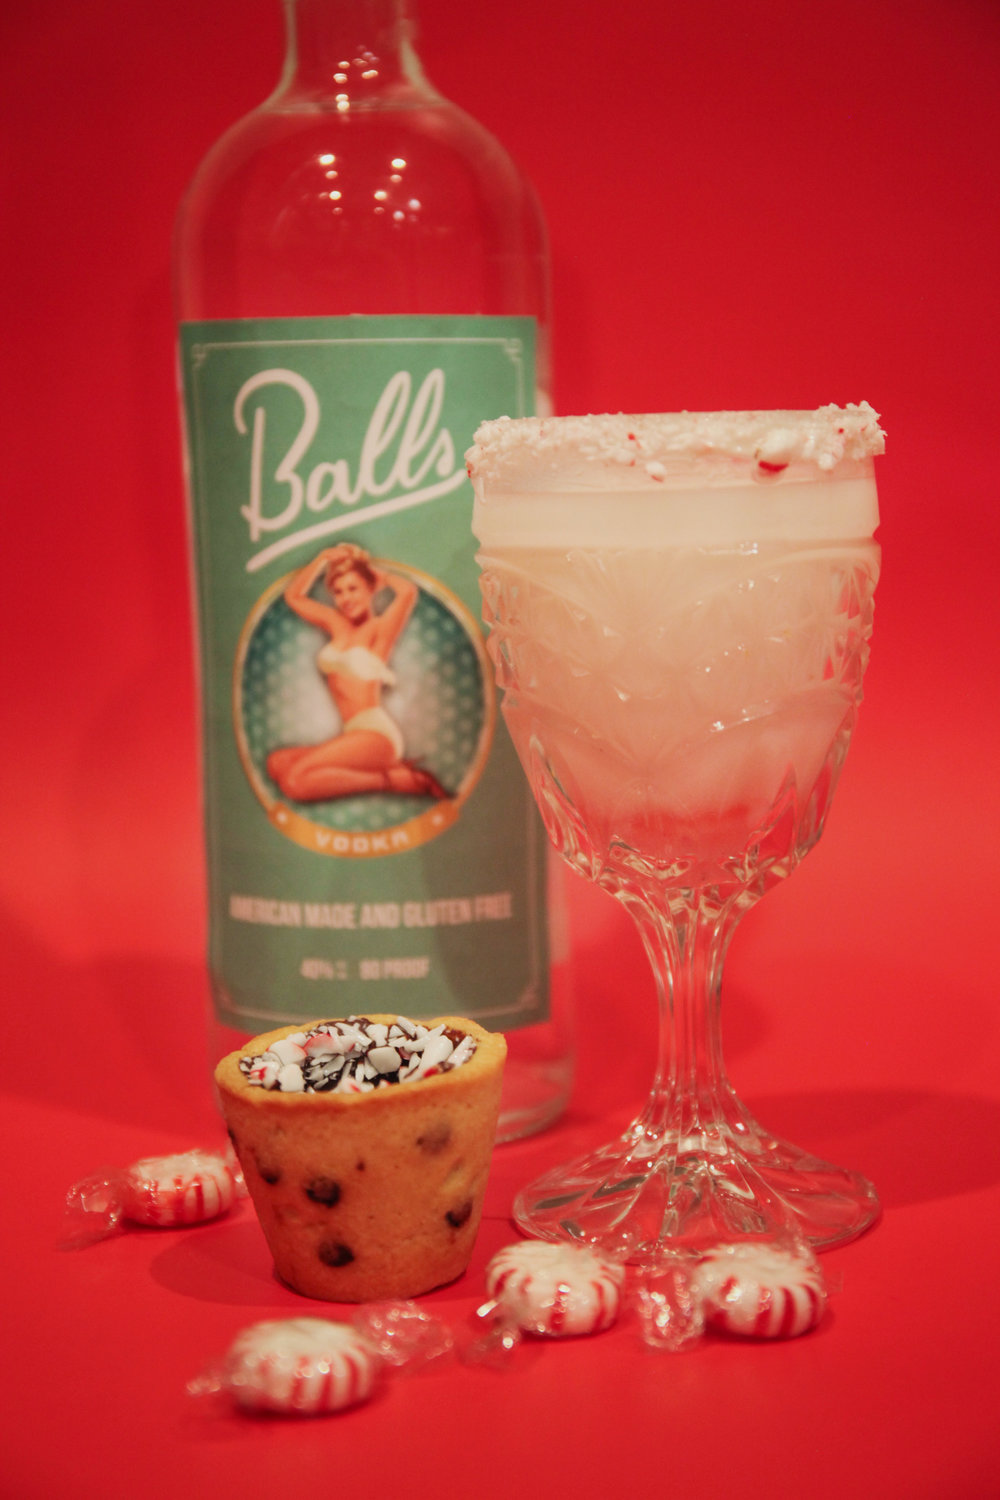 The Ball Drop  - Enjoy this delicious concoction, shaken up by our friends at Balls Vodka Pair with a Peppermint Bark Cookie Cup 1 oz. vodka1 oz. creme de menthe Heavy whipping cream  Mix well in a bowl and carefully spoon into cookie cup of your choice.  Top with a dollop of whipped cream and a chocolate drizzle to really wow your guestsFills approximately 2 cookie cups